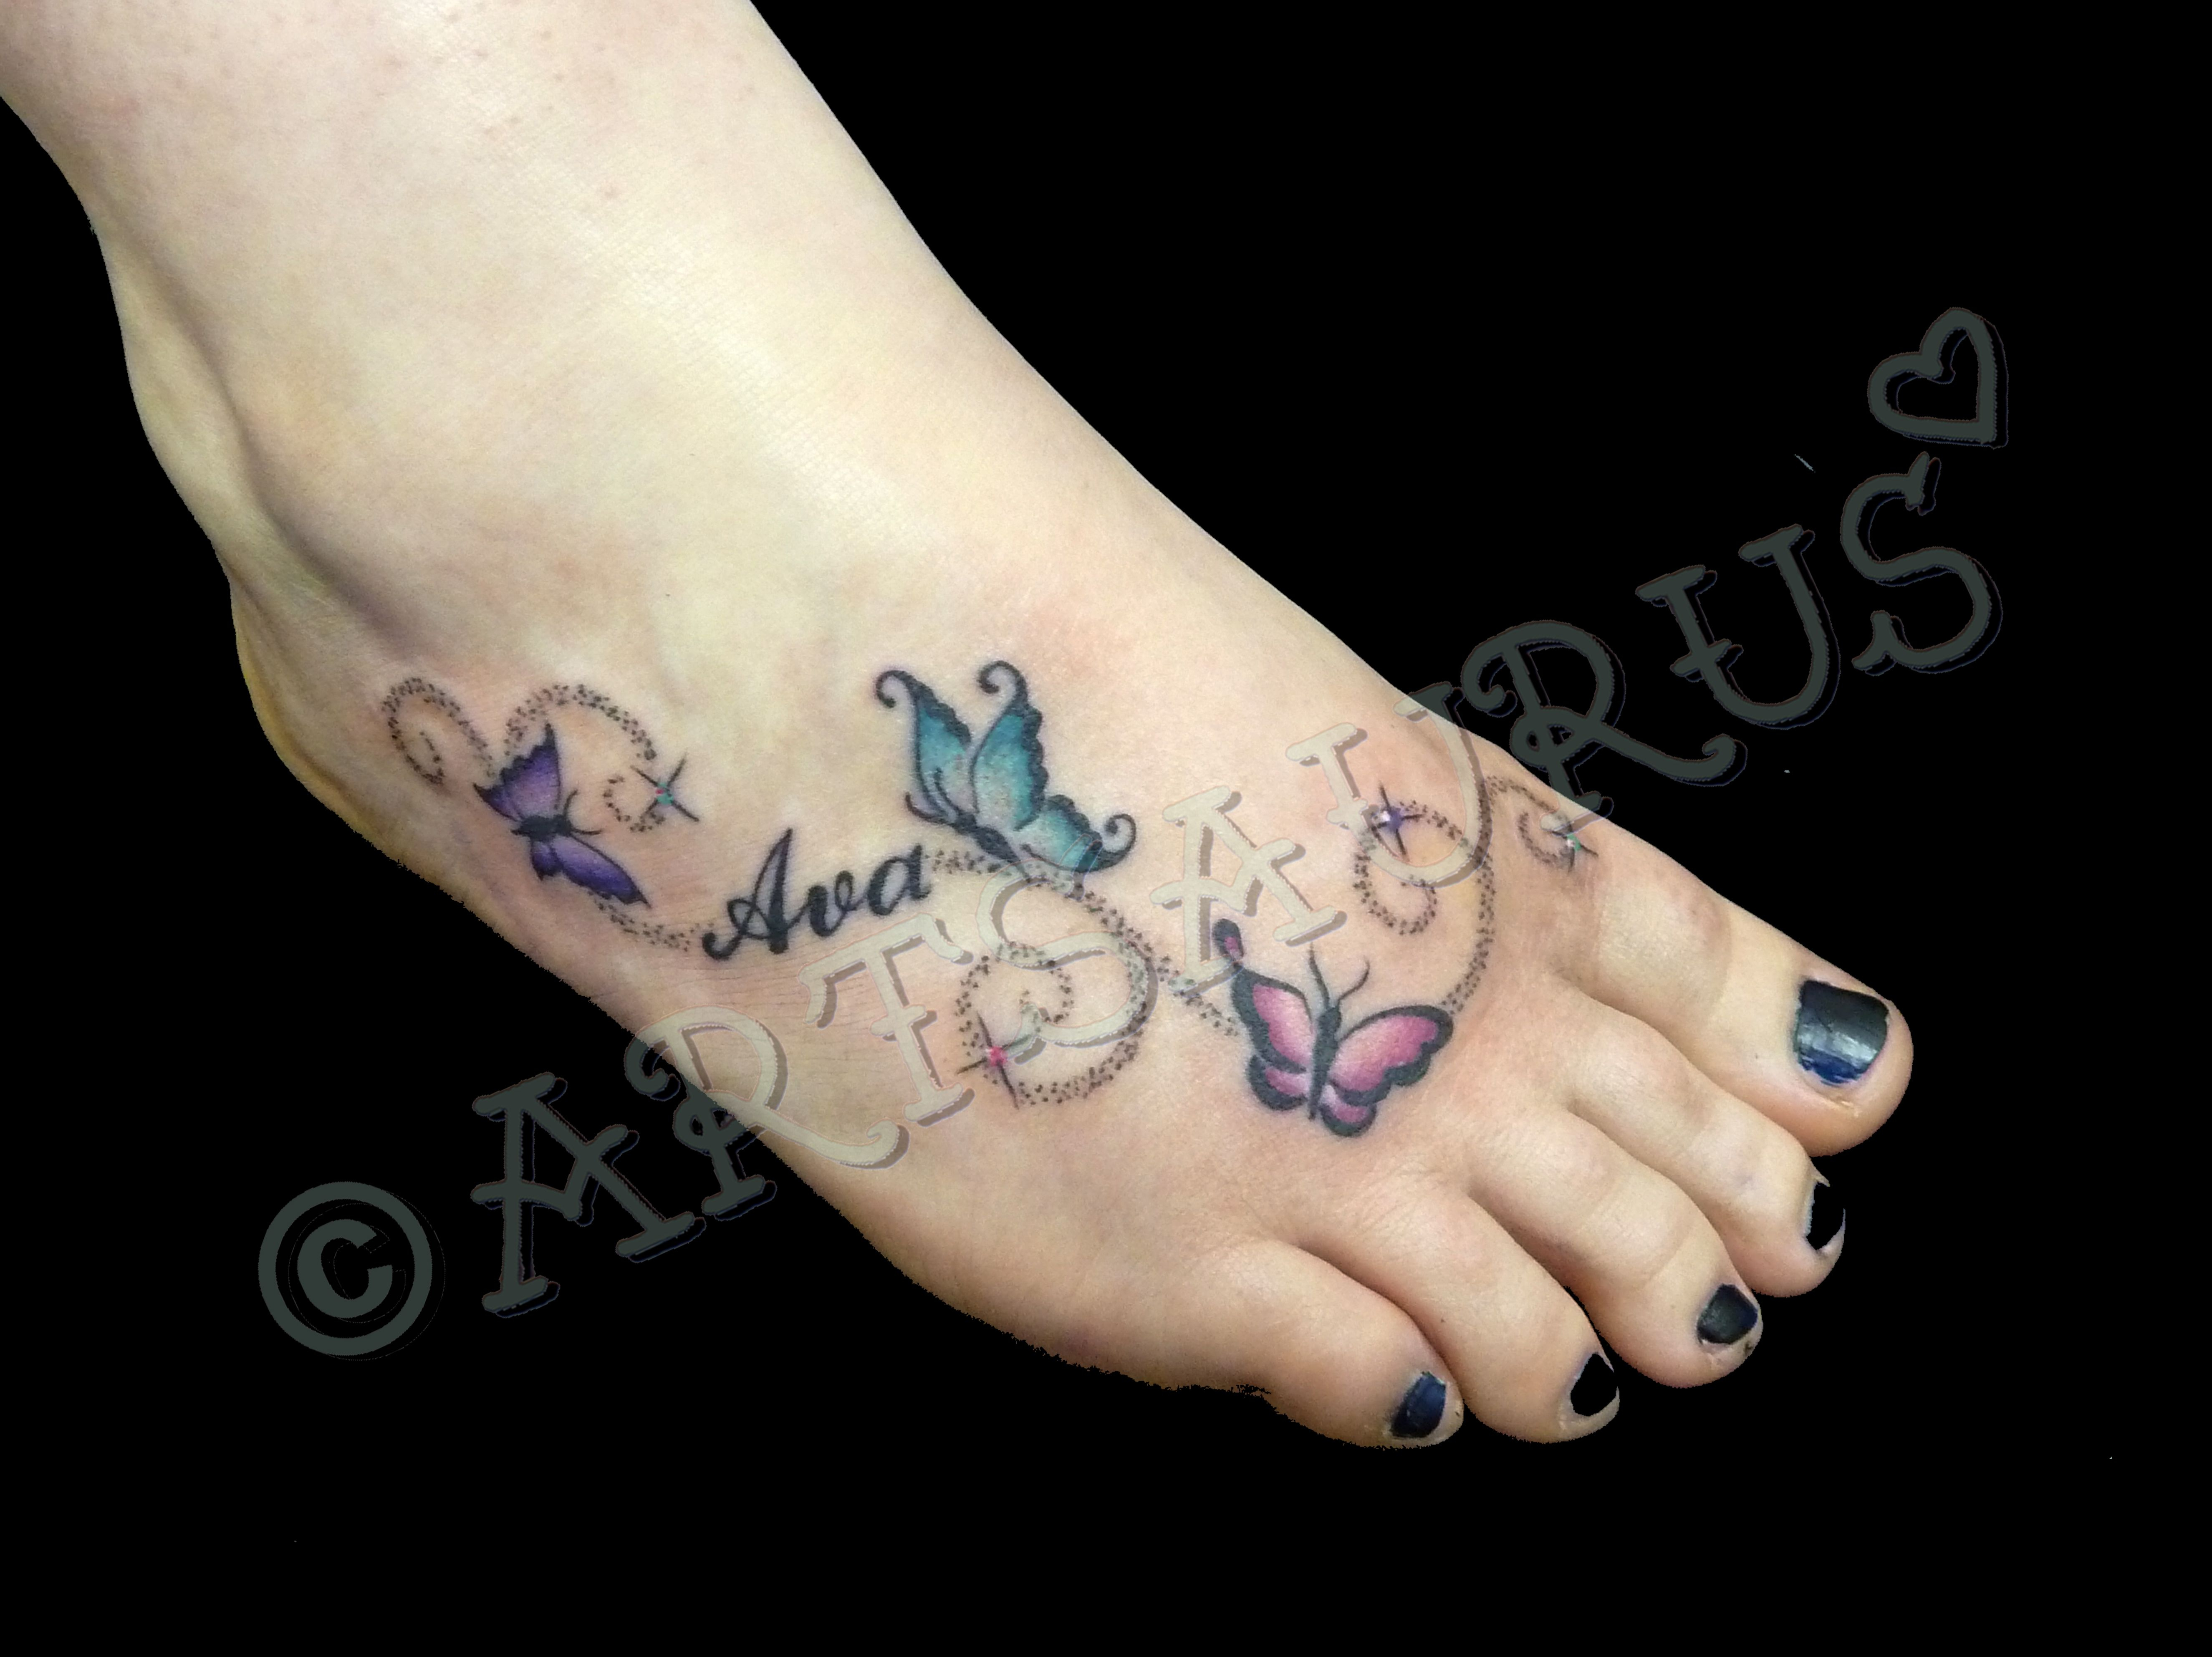 Leave A Comment Tags Butterfly Foot Girly Stars Name Tattoo Wrist in dimensions 5300 X 3970